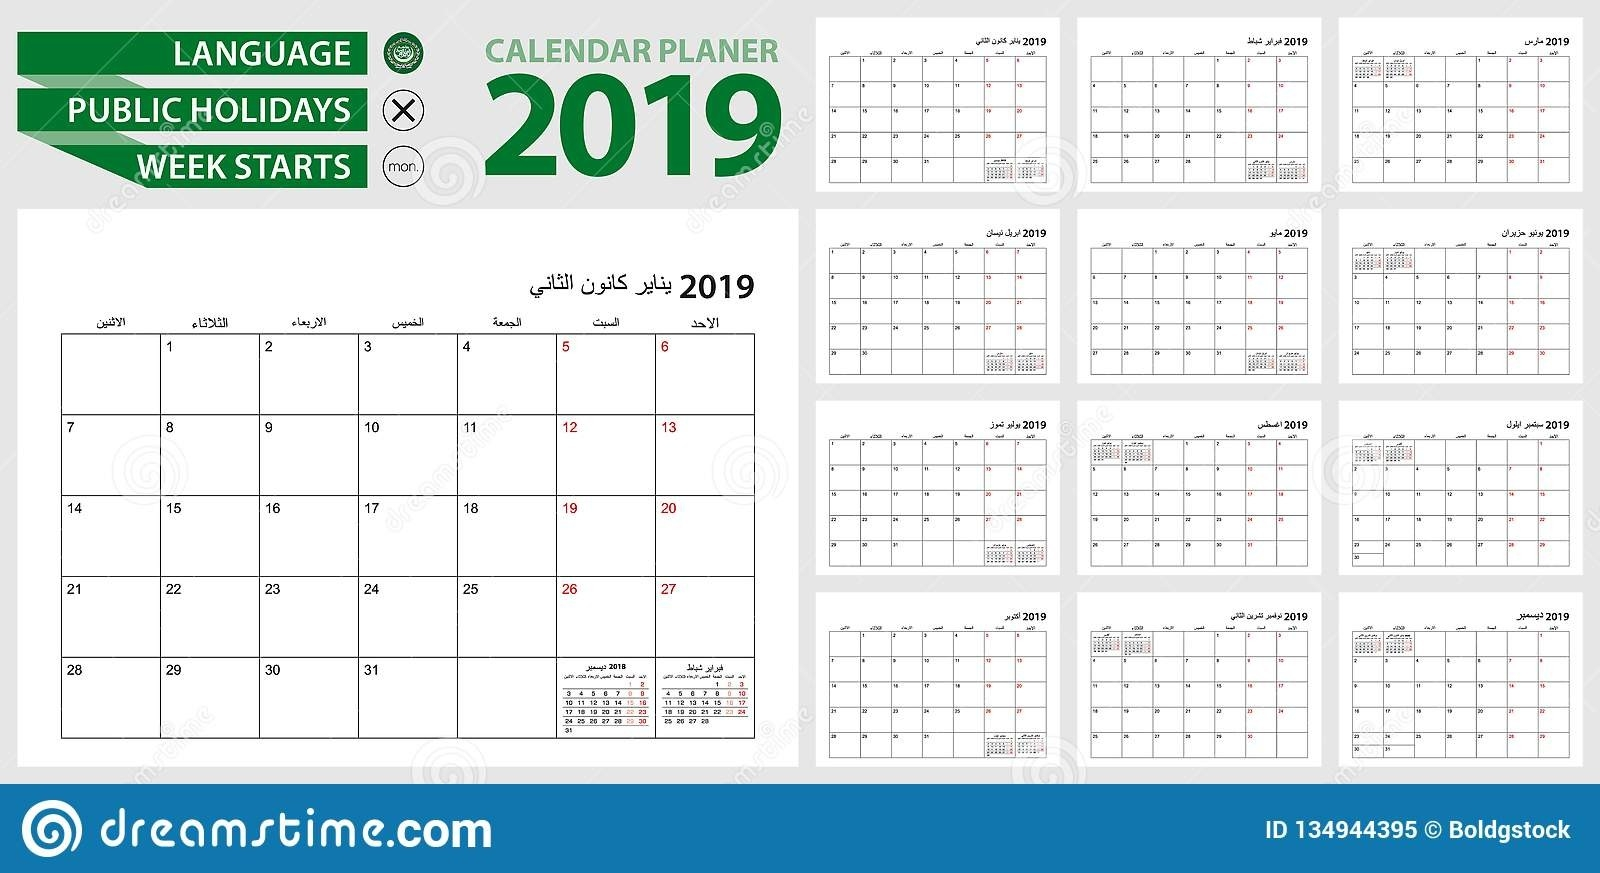 Arabic Calendar Planner For 2019. Arabic Language, Week-January 2020 Hijri Calendar